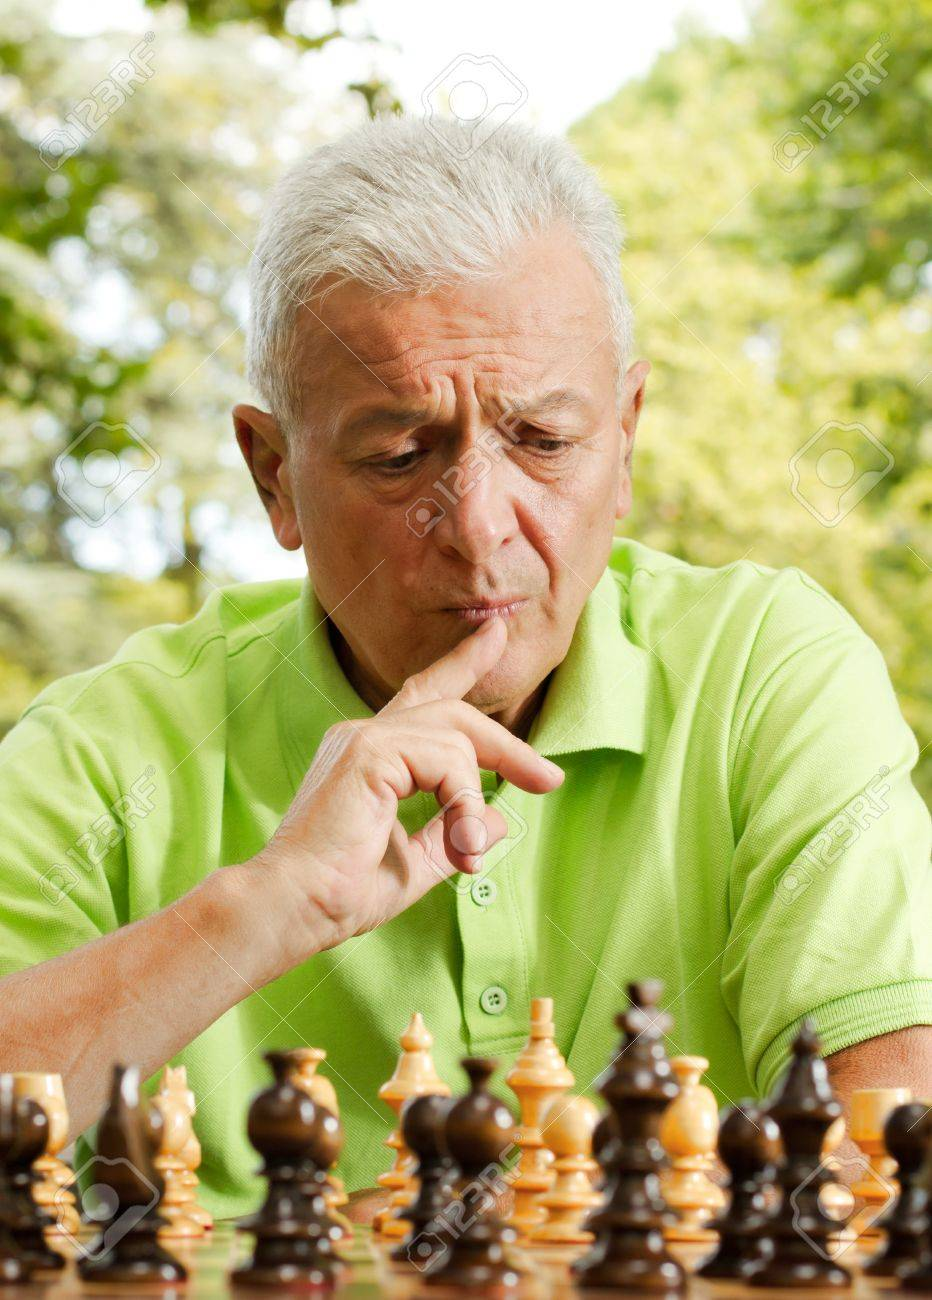 Portrait of worried elderly man playing chess outdoors. - 11212457